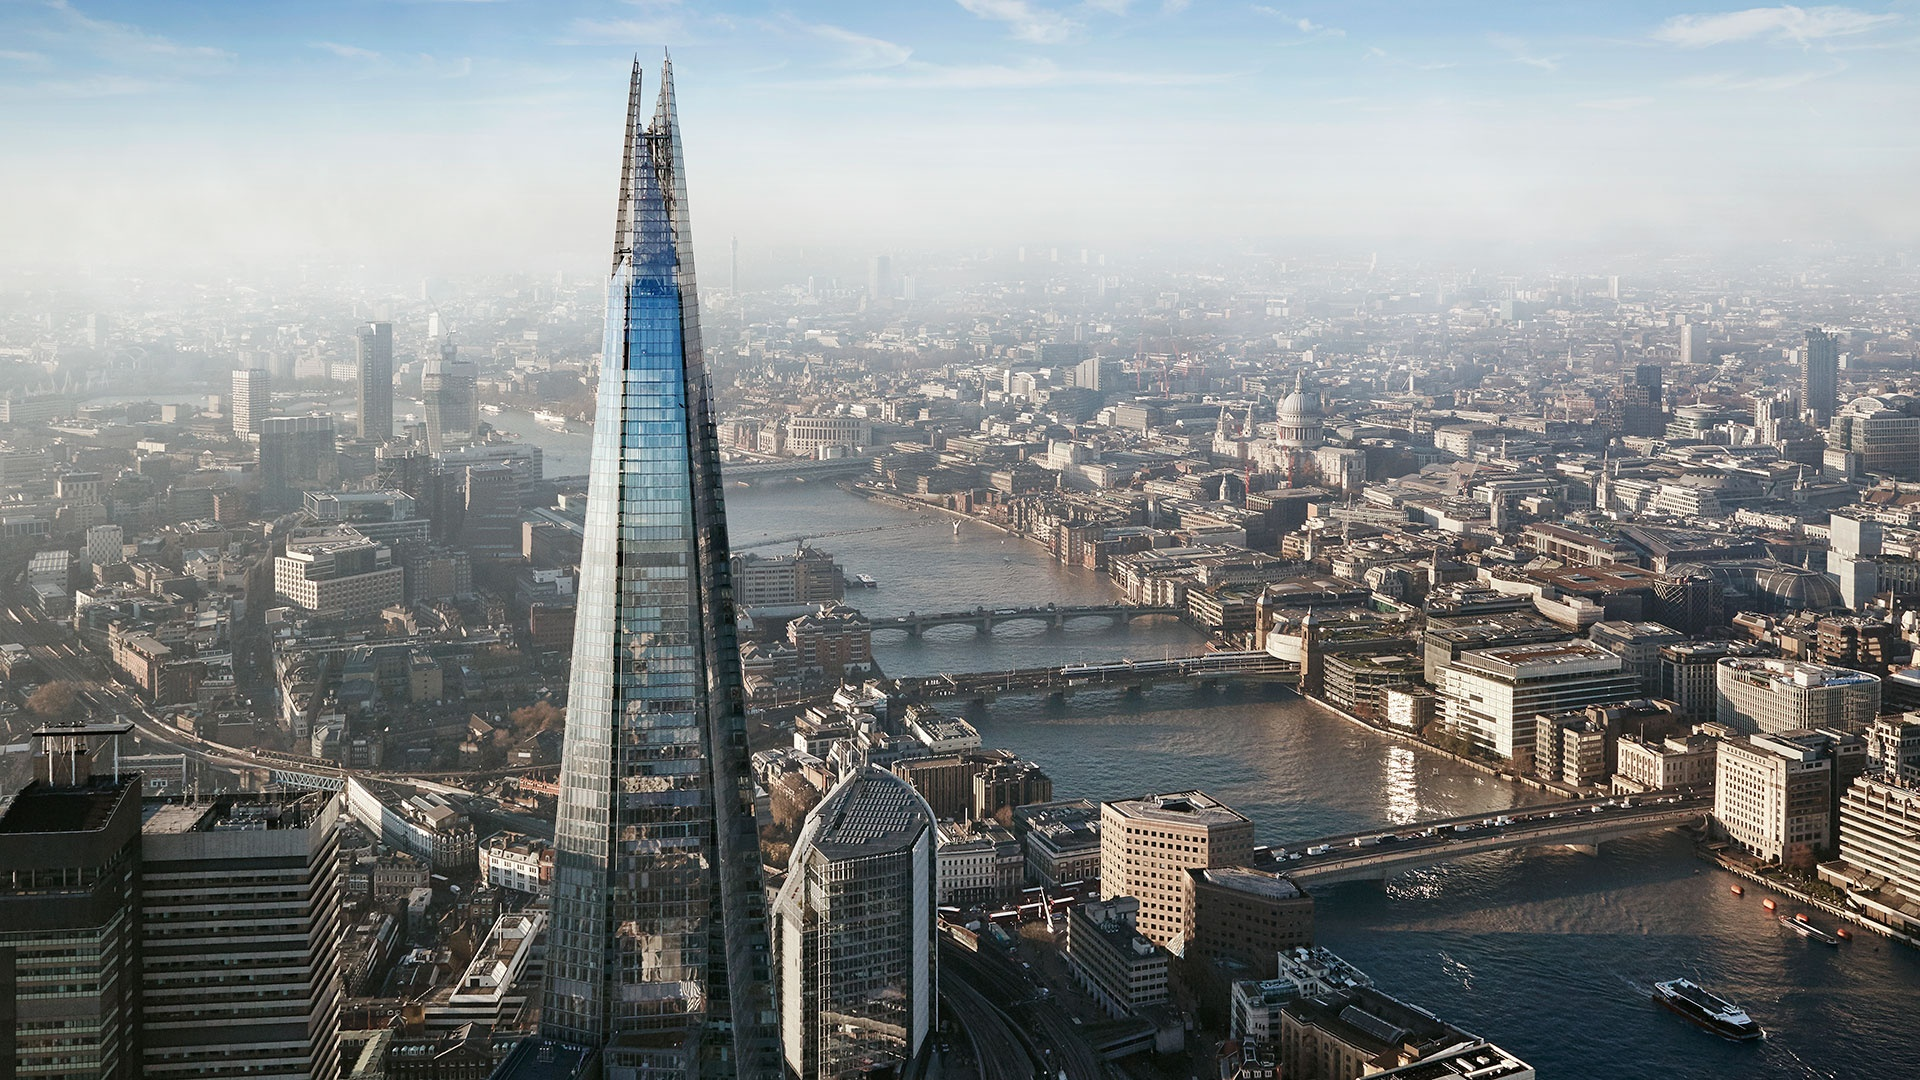 Things to do at the Shard: Bath with a view